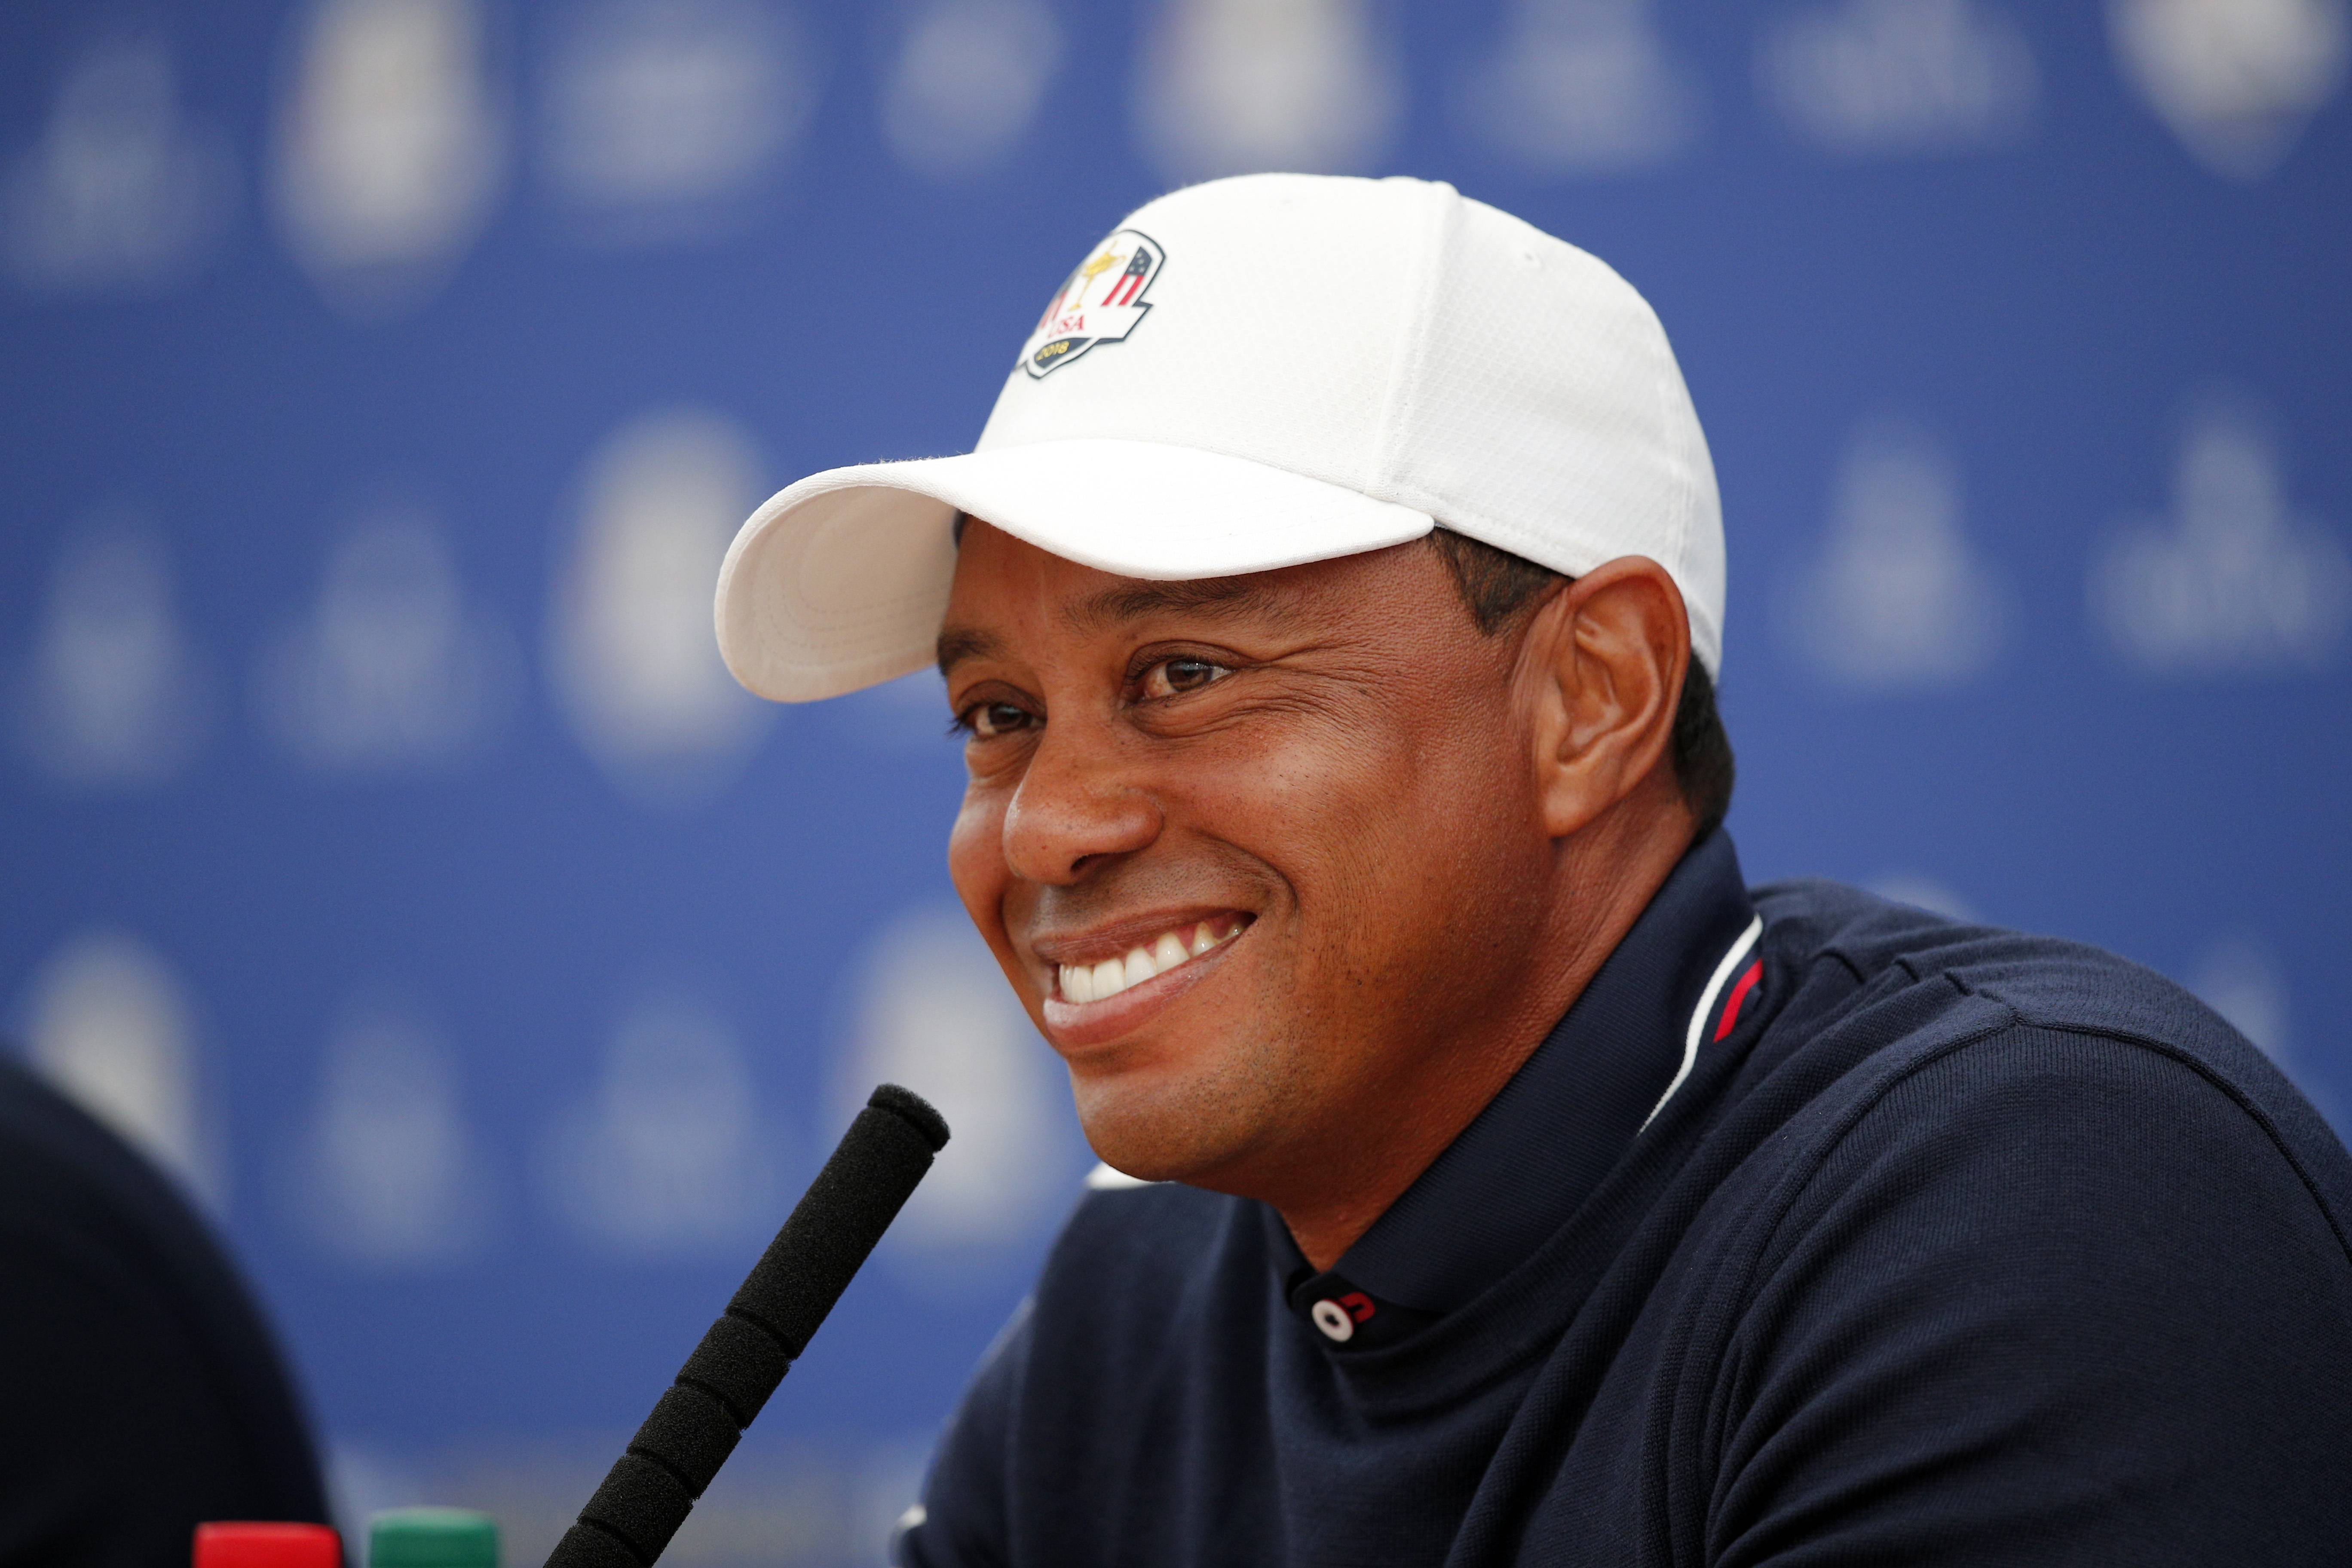 Tiger Woods of the US answers questions during a press conference as part of the 2018 Ryder Cup at Le Golf National in Saint-Quentin-en-Yvelines, outside Paris, France, Tuesday, Sept. 25, 2018. The 42nd Ryder Cup will be held in France from Sept. 28-30, 2018 at Le Golf National. (AP Photo/Francois Mori)